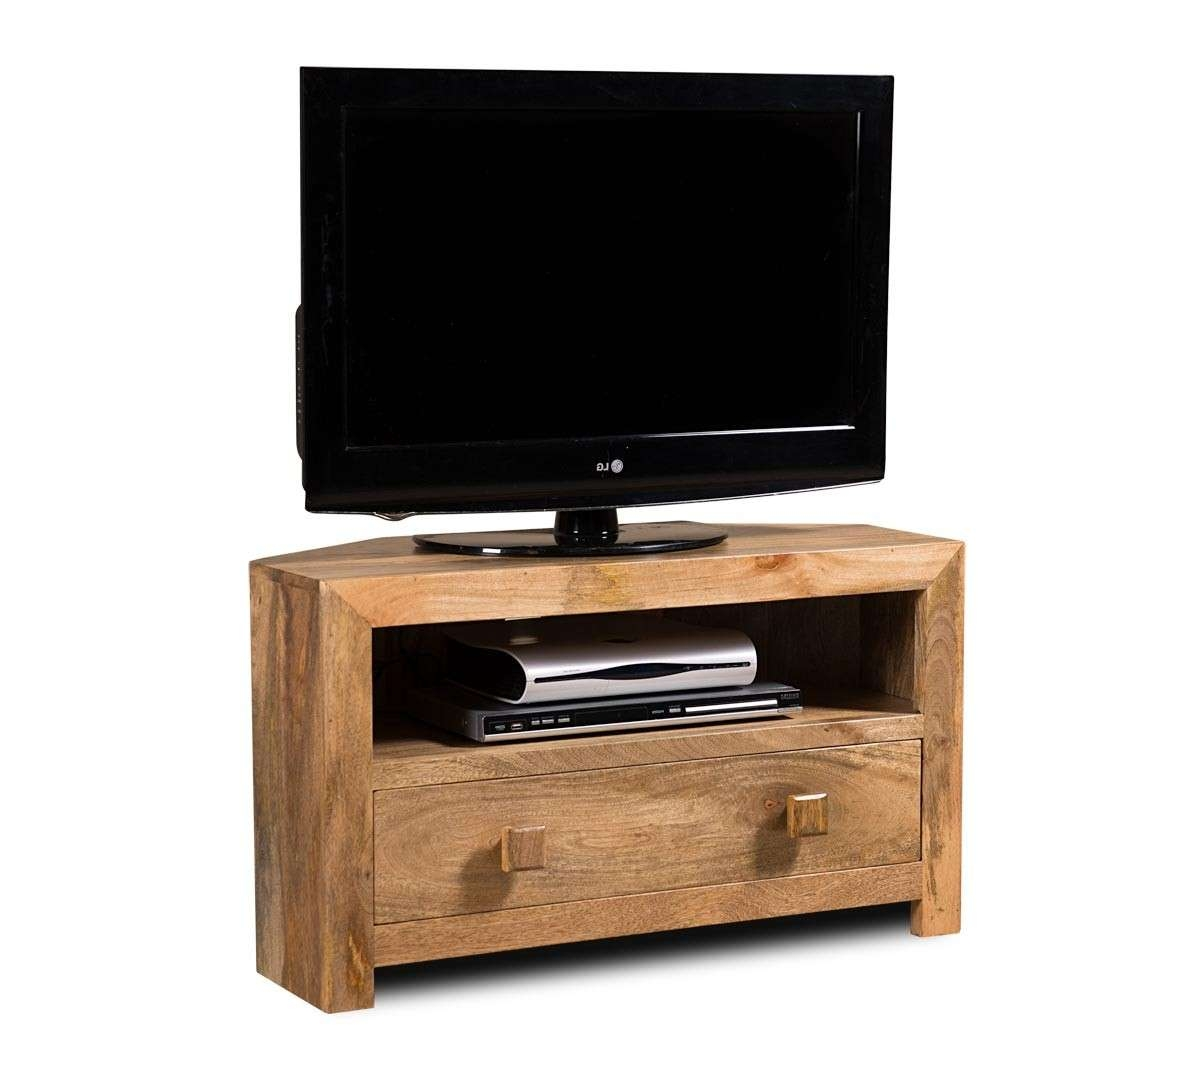 Wooden Corner Tv Stand With Fireplace Decofurnish Inspirations With Wooden Corner Tv Stands (View 7 of 15)